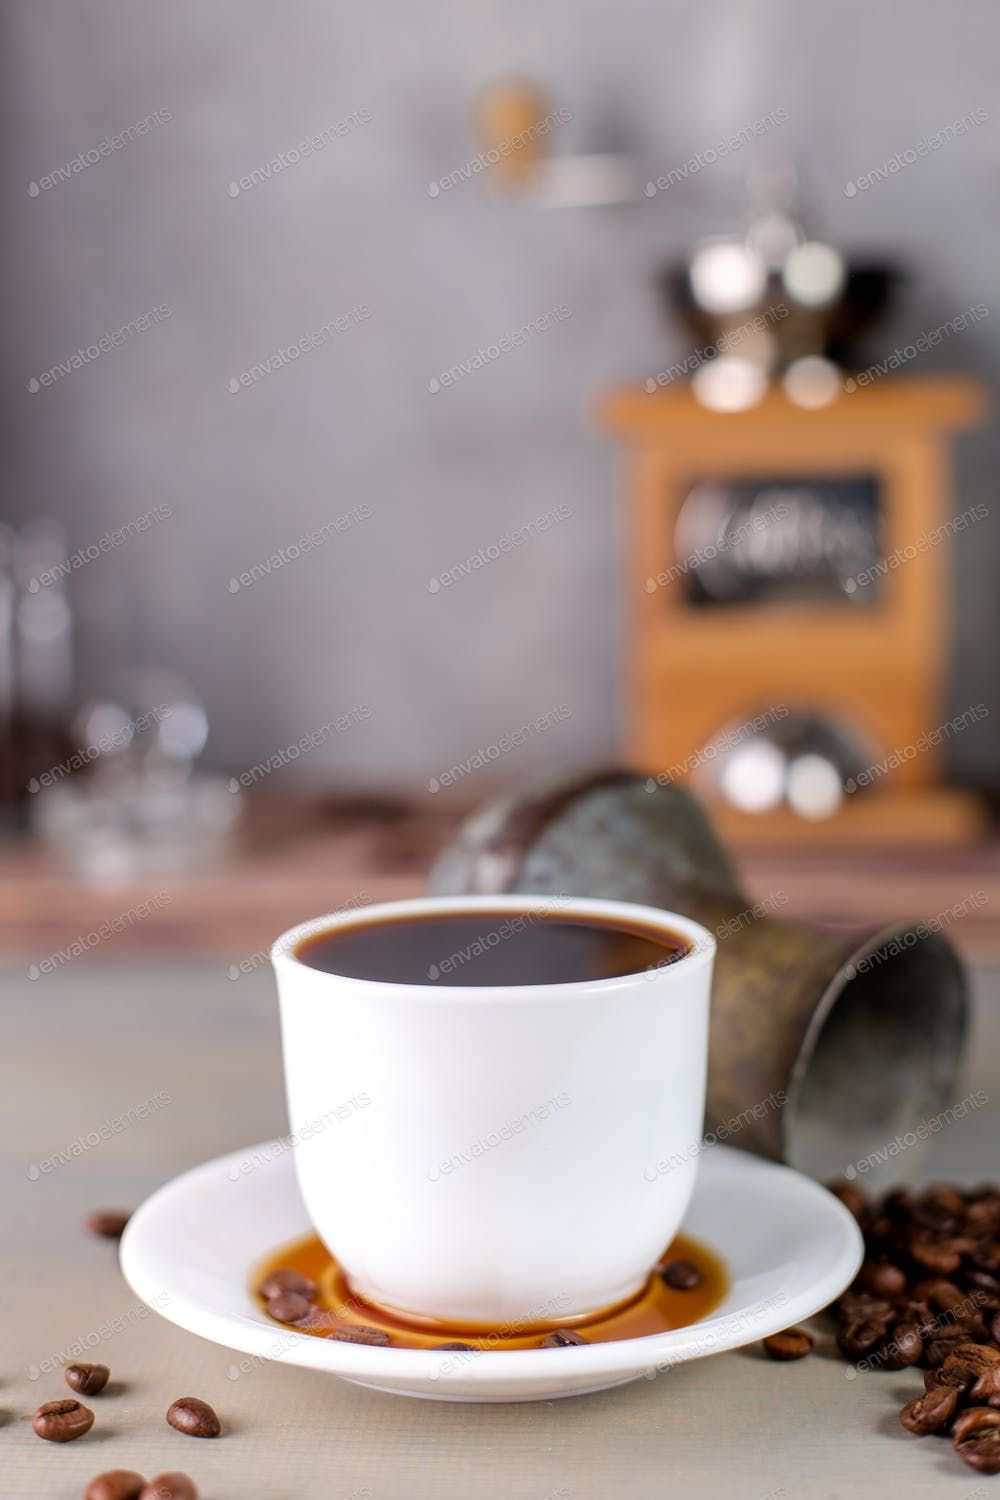 A White Cup Of Hot Coffee In A Scattering Of Coffee Beans On A